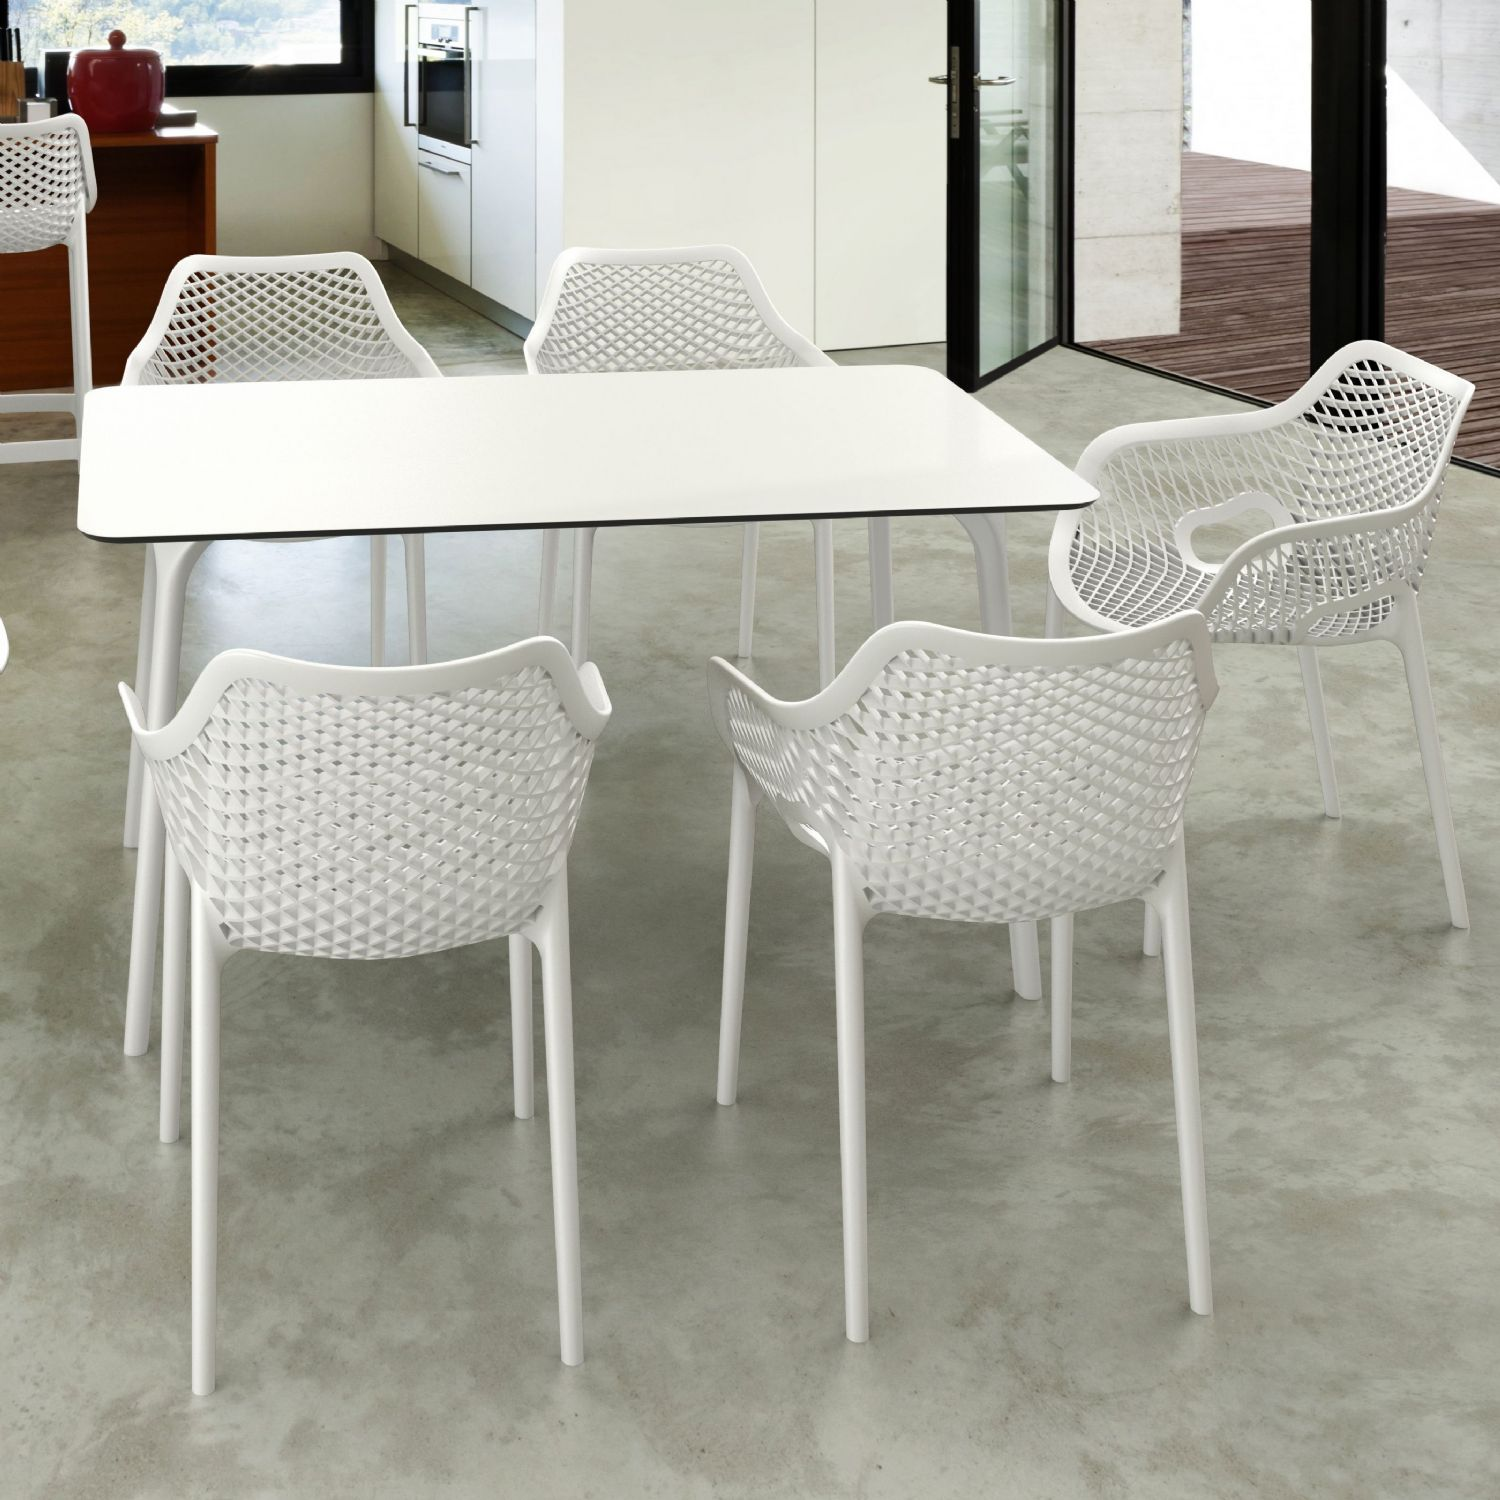 Maya Rectangle Dining Table 55 inch White ISP690-WHI - 6